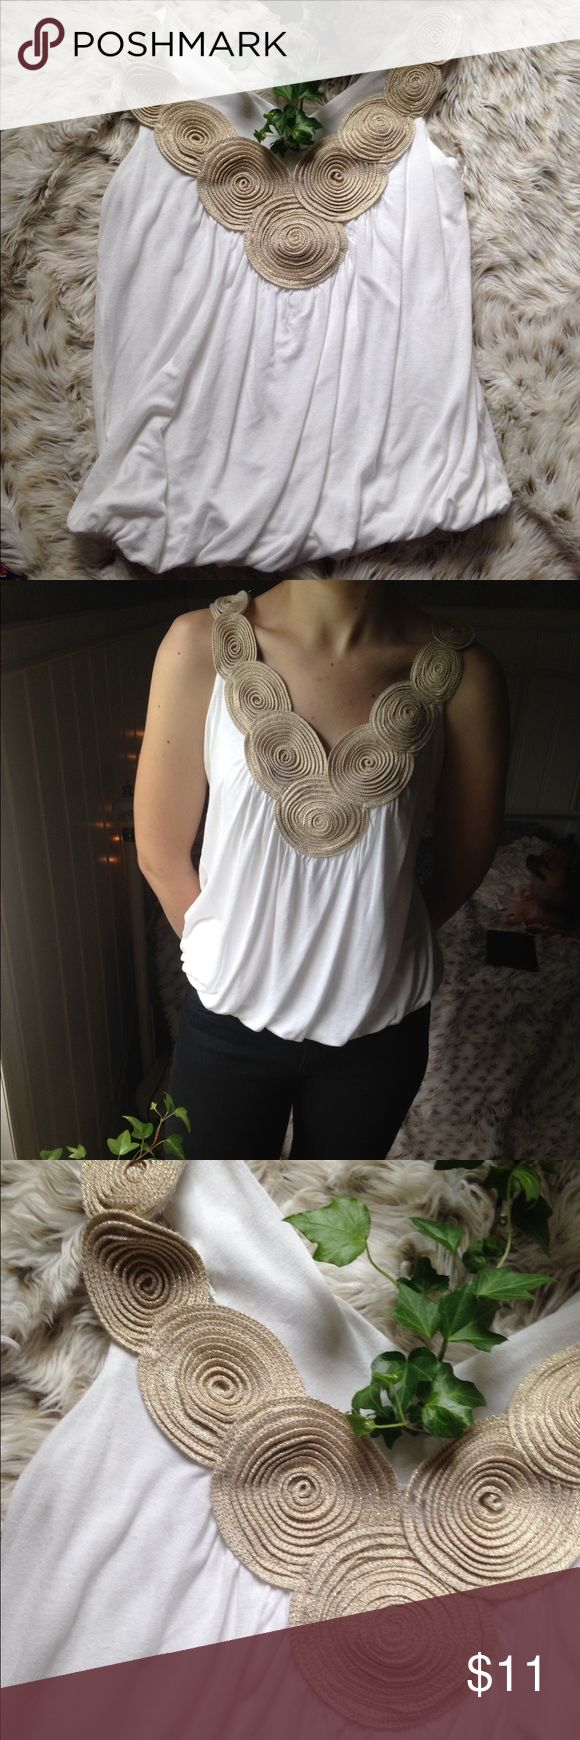 Body Central | Yo Yo Tank | Size S Cream yo yo's are accented with gold flecks. Bottom has elastic. In used but excellent condition. Size Small. Any questions and offers are warmly welcome. :) Thank you for looking! Body Central Tops Tank Tops